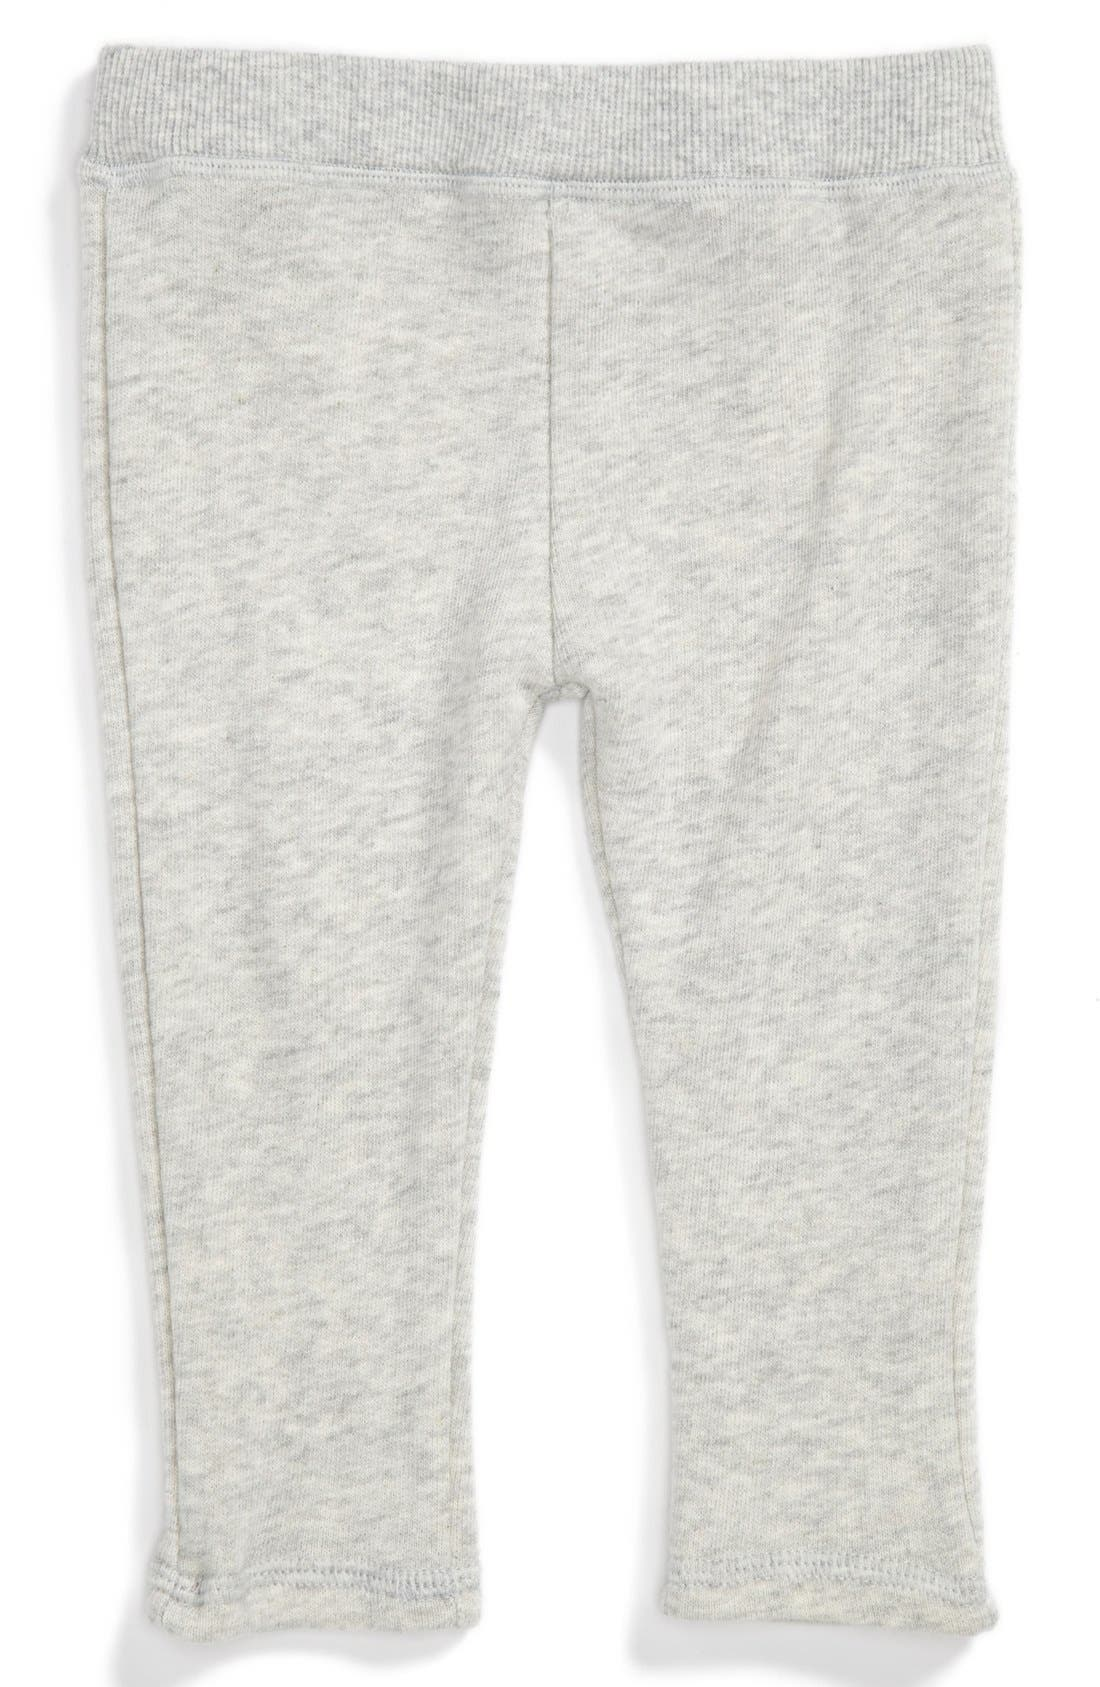 Main Image - Peek 'Micki' Sweatpants (Baby)